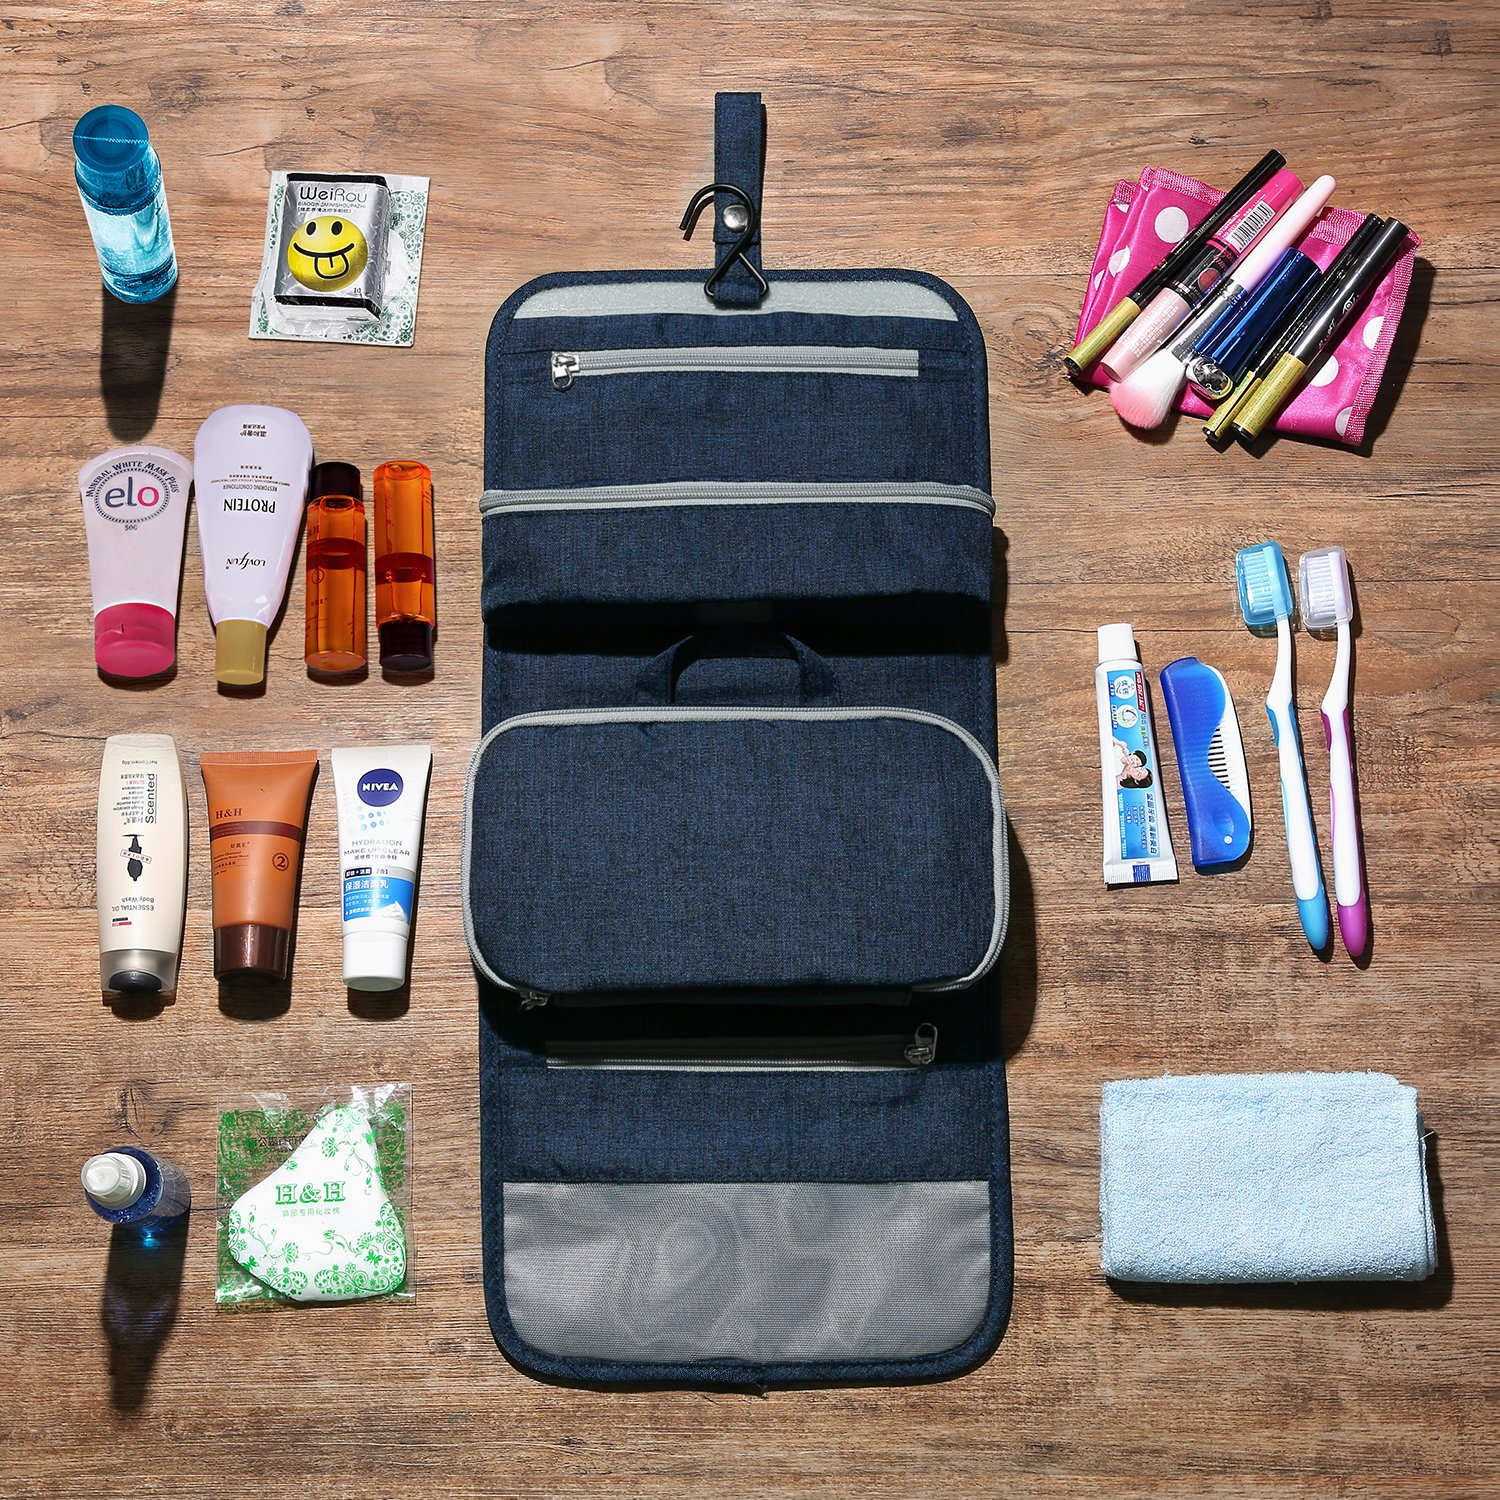 Mountaintop Hanging Travel Toiletry Bag, 7.1 x 2.4 x 9.3-Inch For Men & Women by Mountaintop (Image #2)